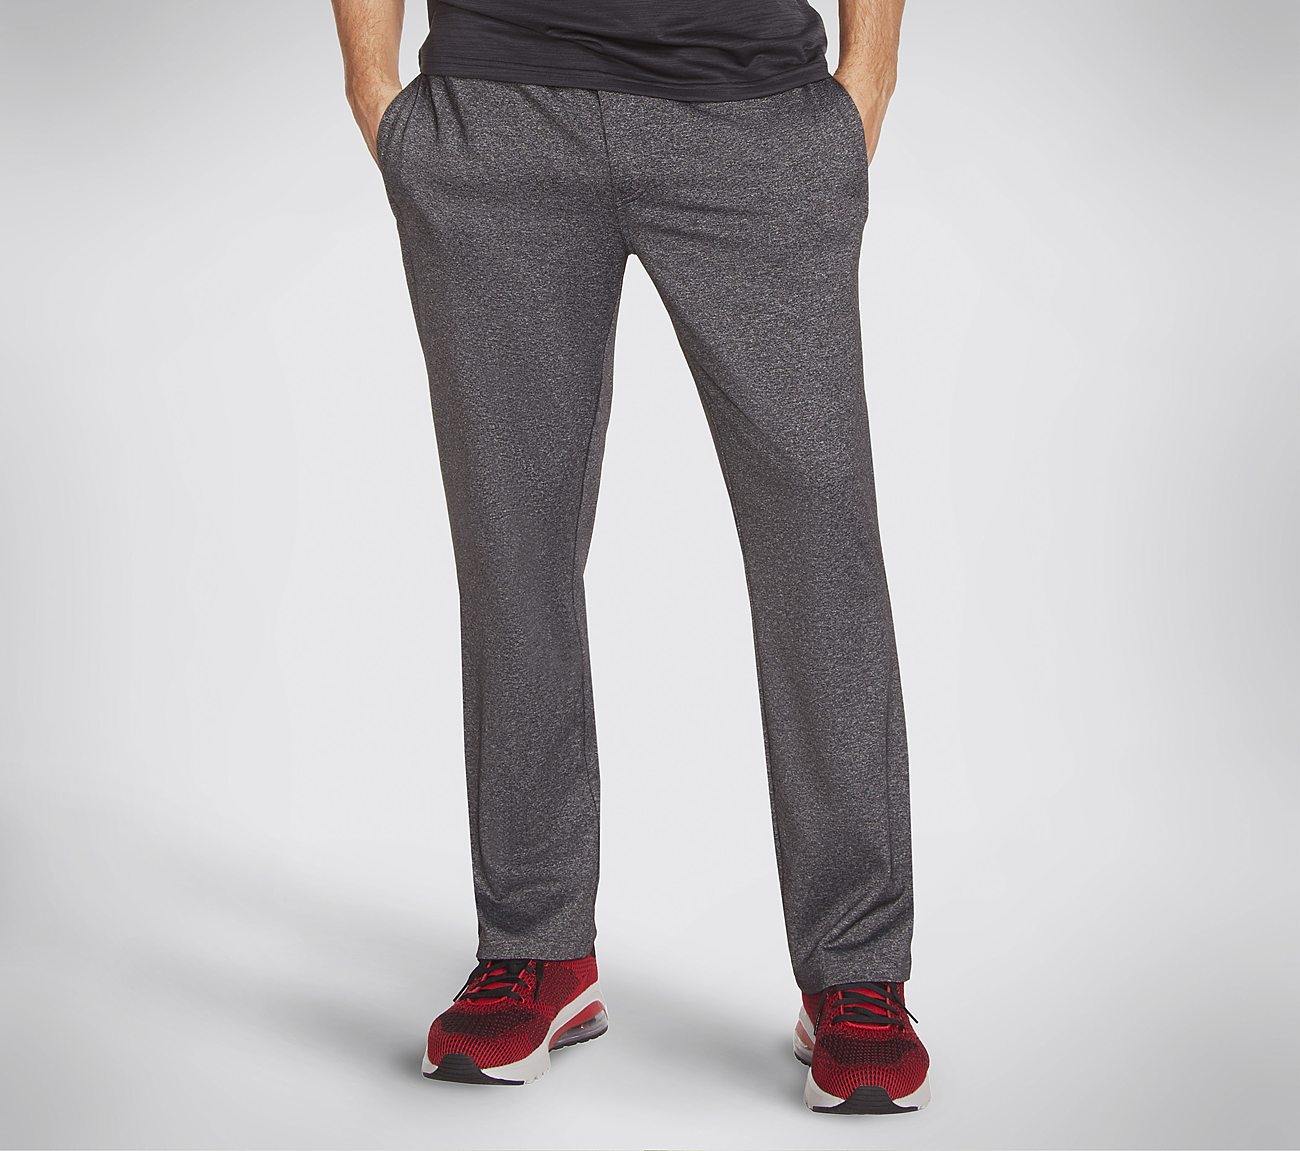 Skechers GOwalk Flex Pant